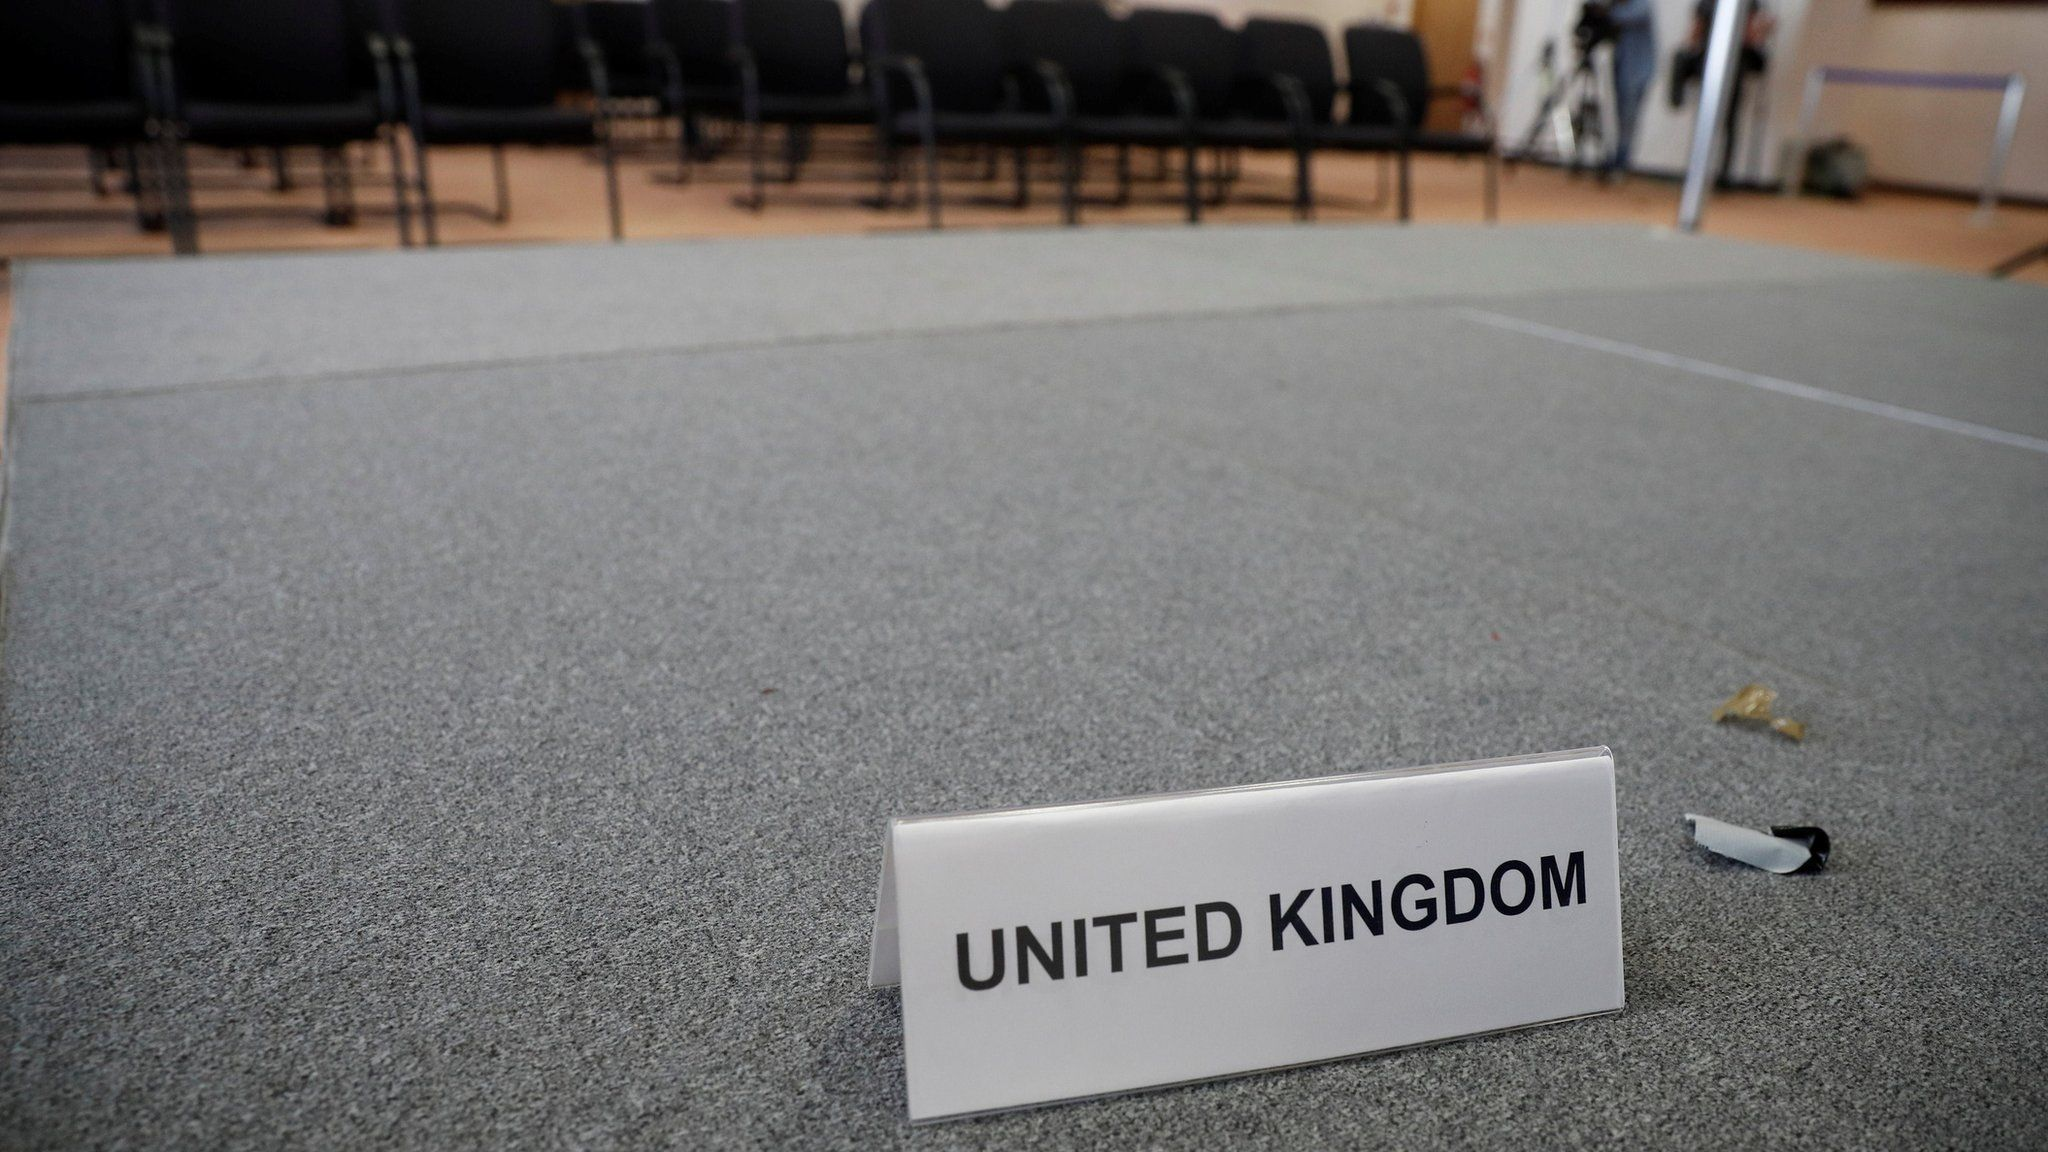 A United Kingdom name card lies on a stage inside the empty British press conference room on the second day of the EU Summit in Brussels, Belgium June 29, 2016.